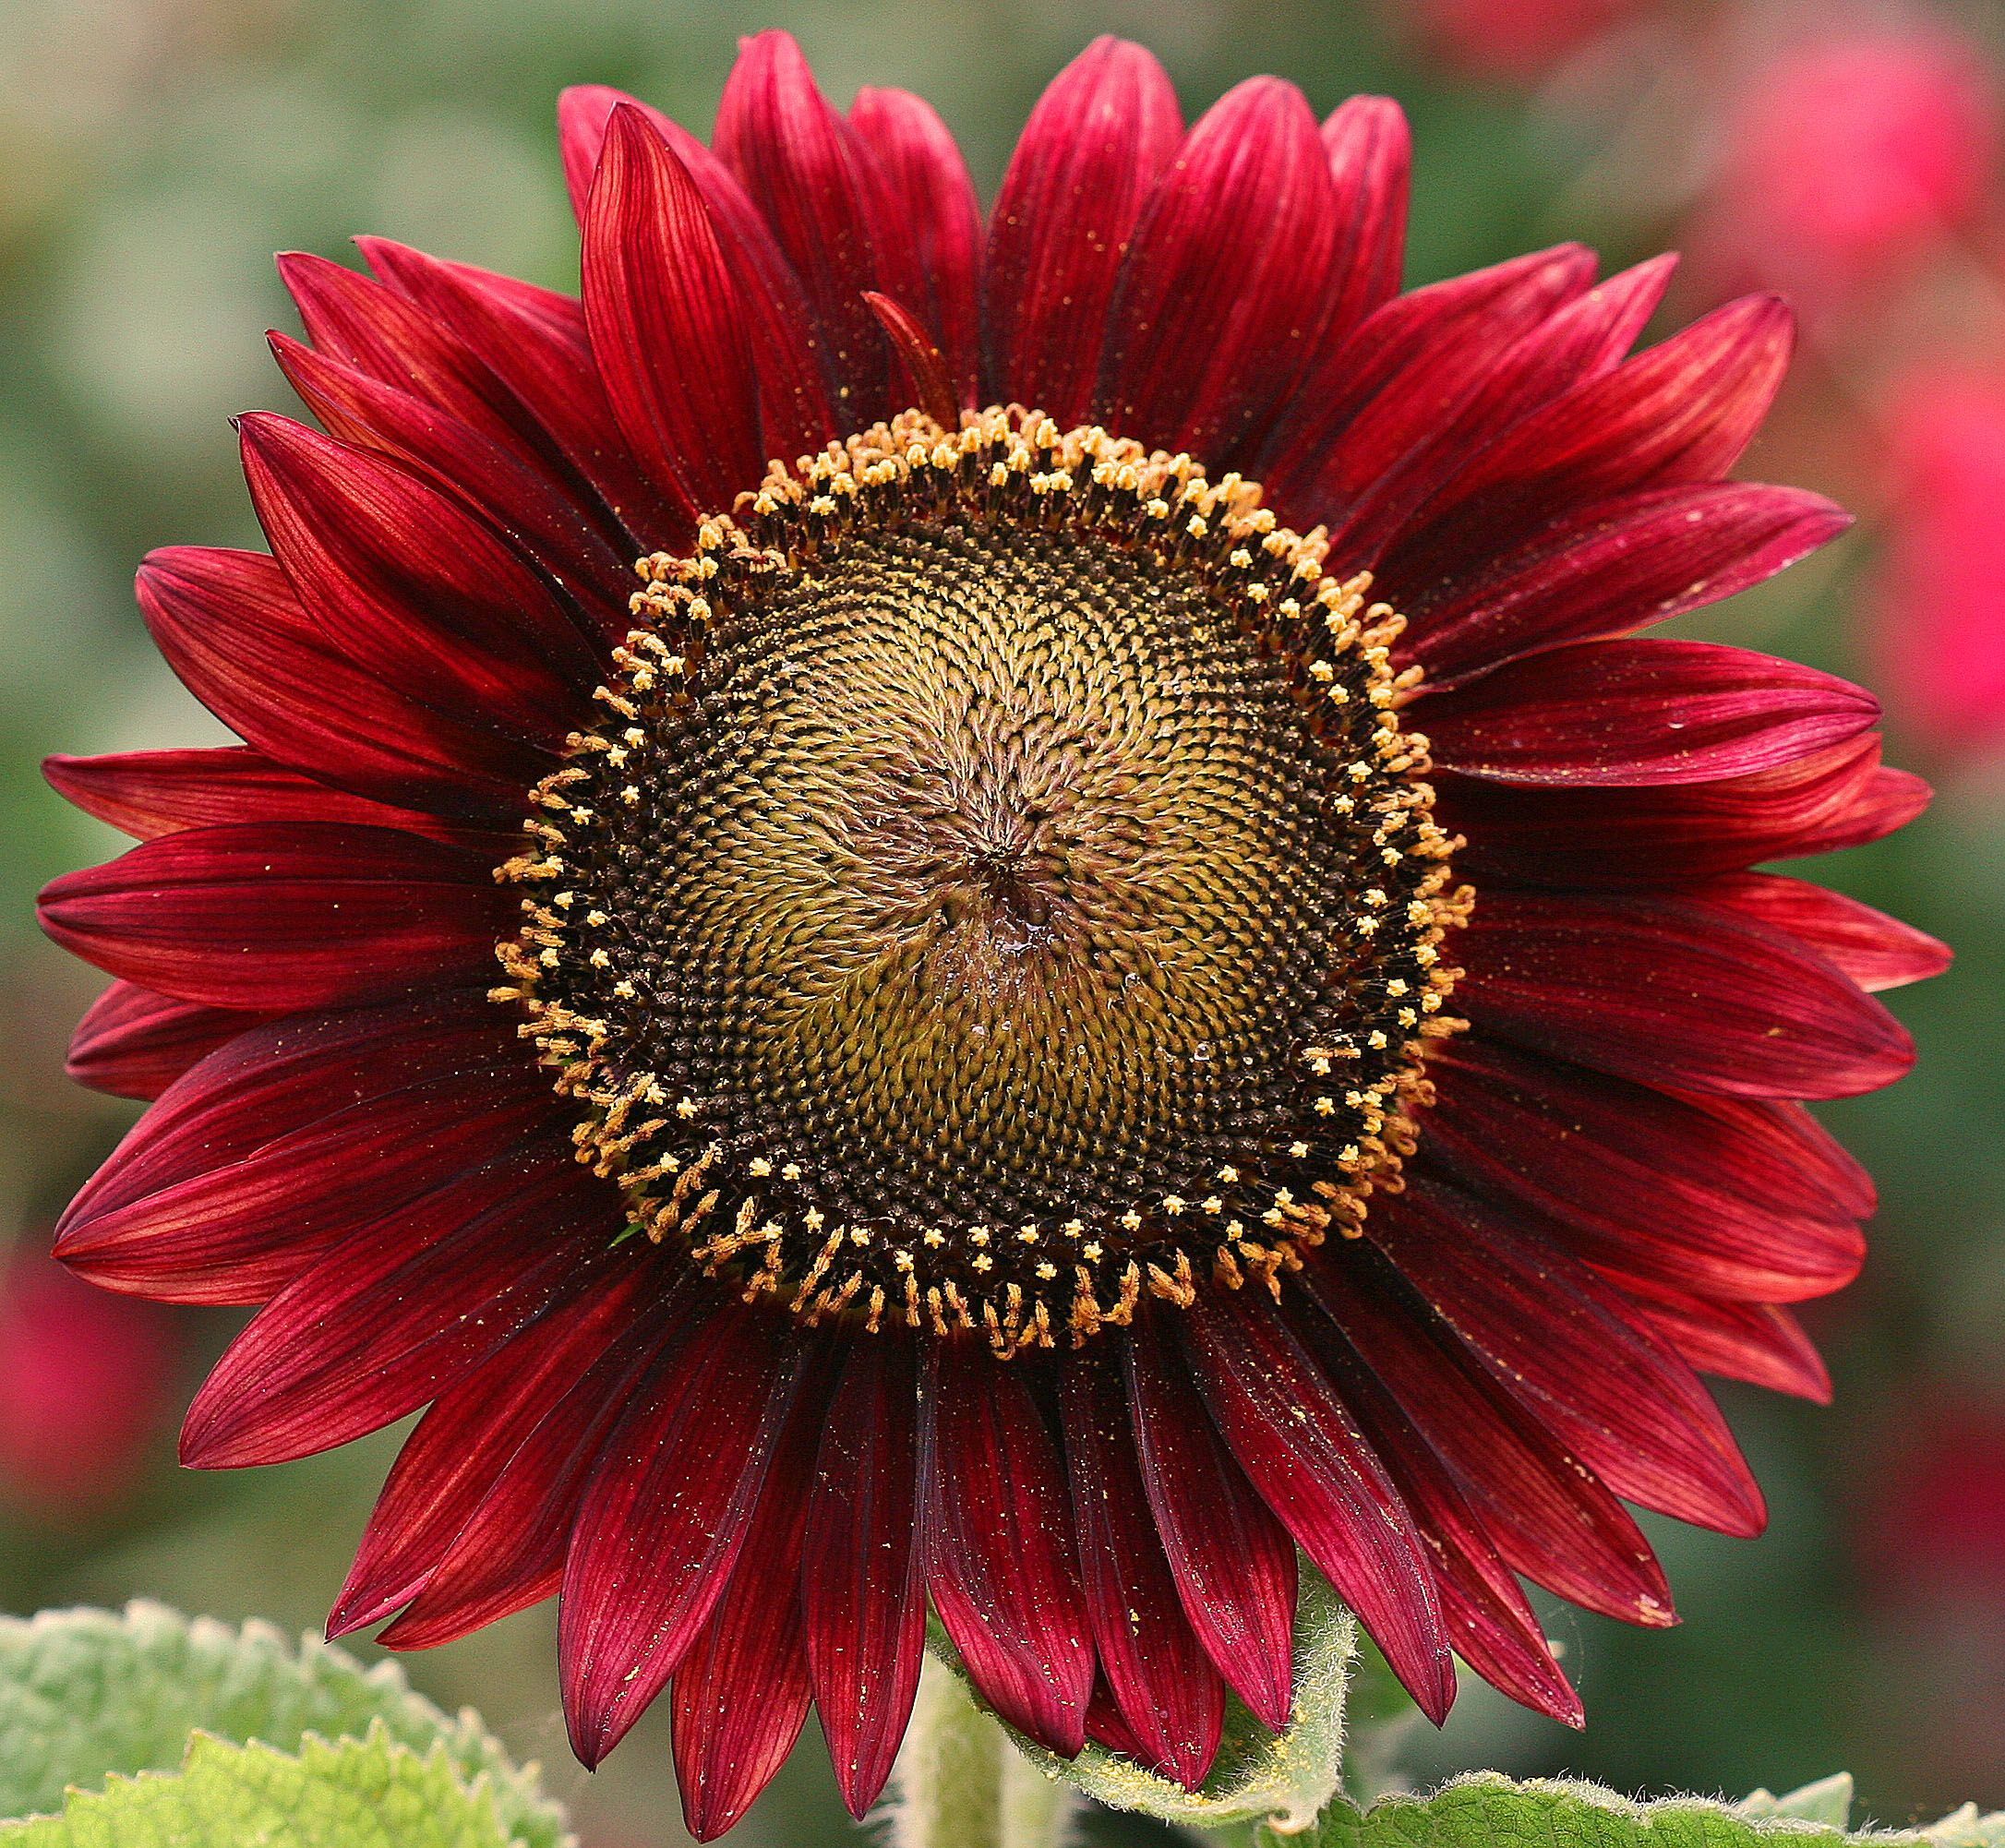 Girasol Rojo Hermoso Red Sun Flower Flickr Intercambio De